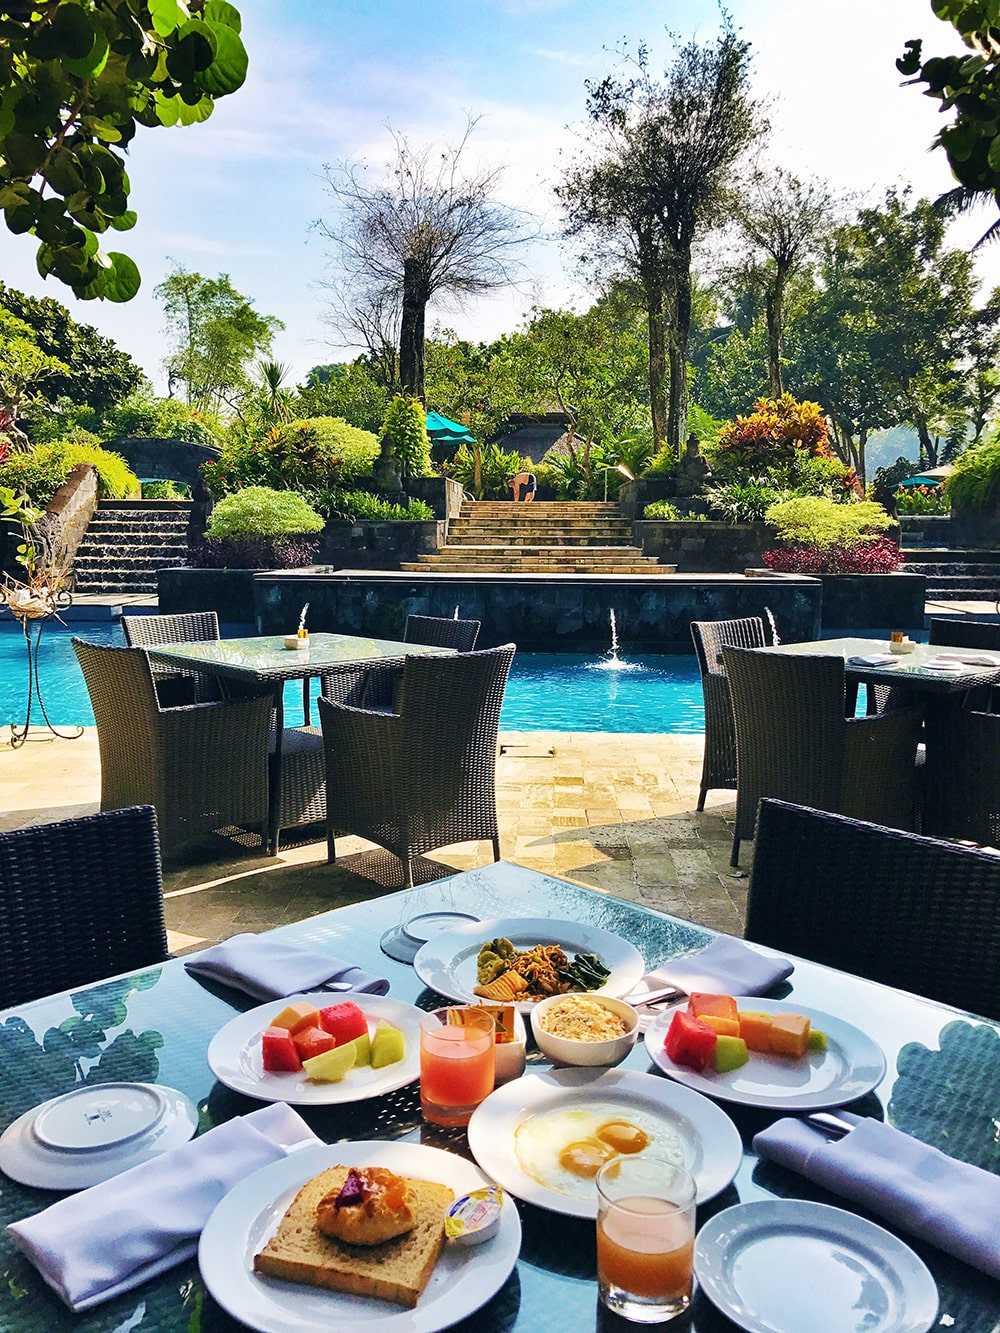 Crystal Phuong- What to do in Yogyakarta- Breakfast at Hyatt Regency Yogyakarta